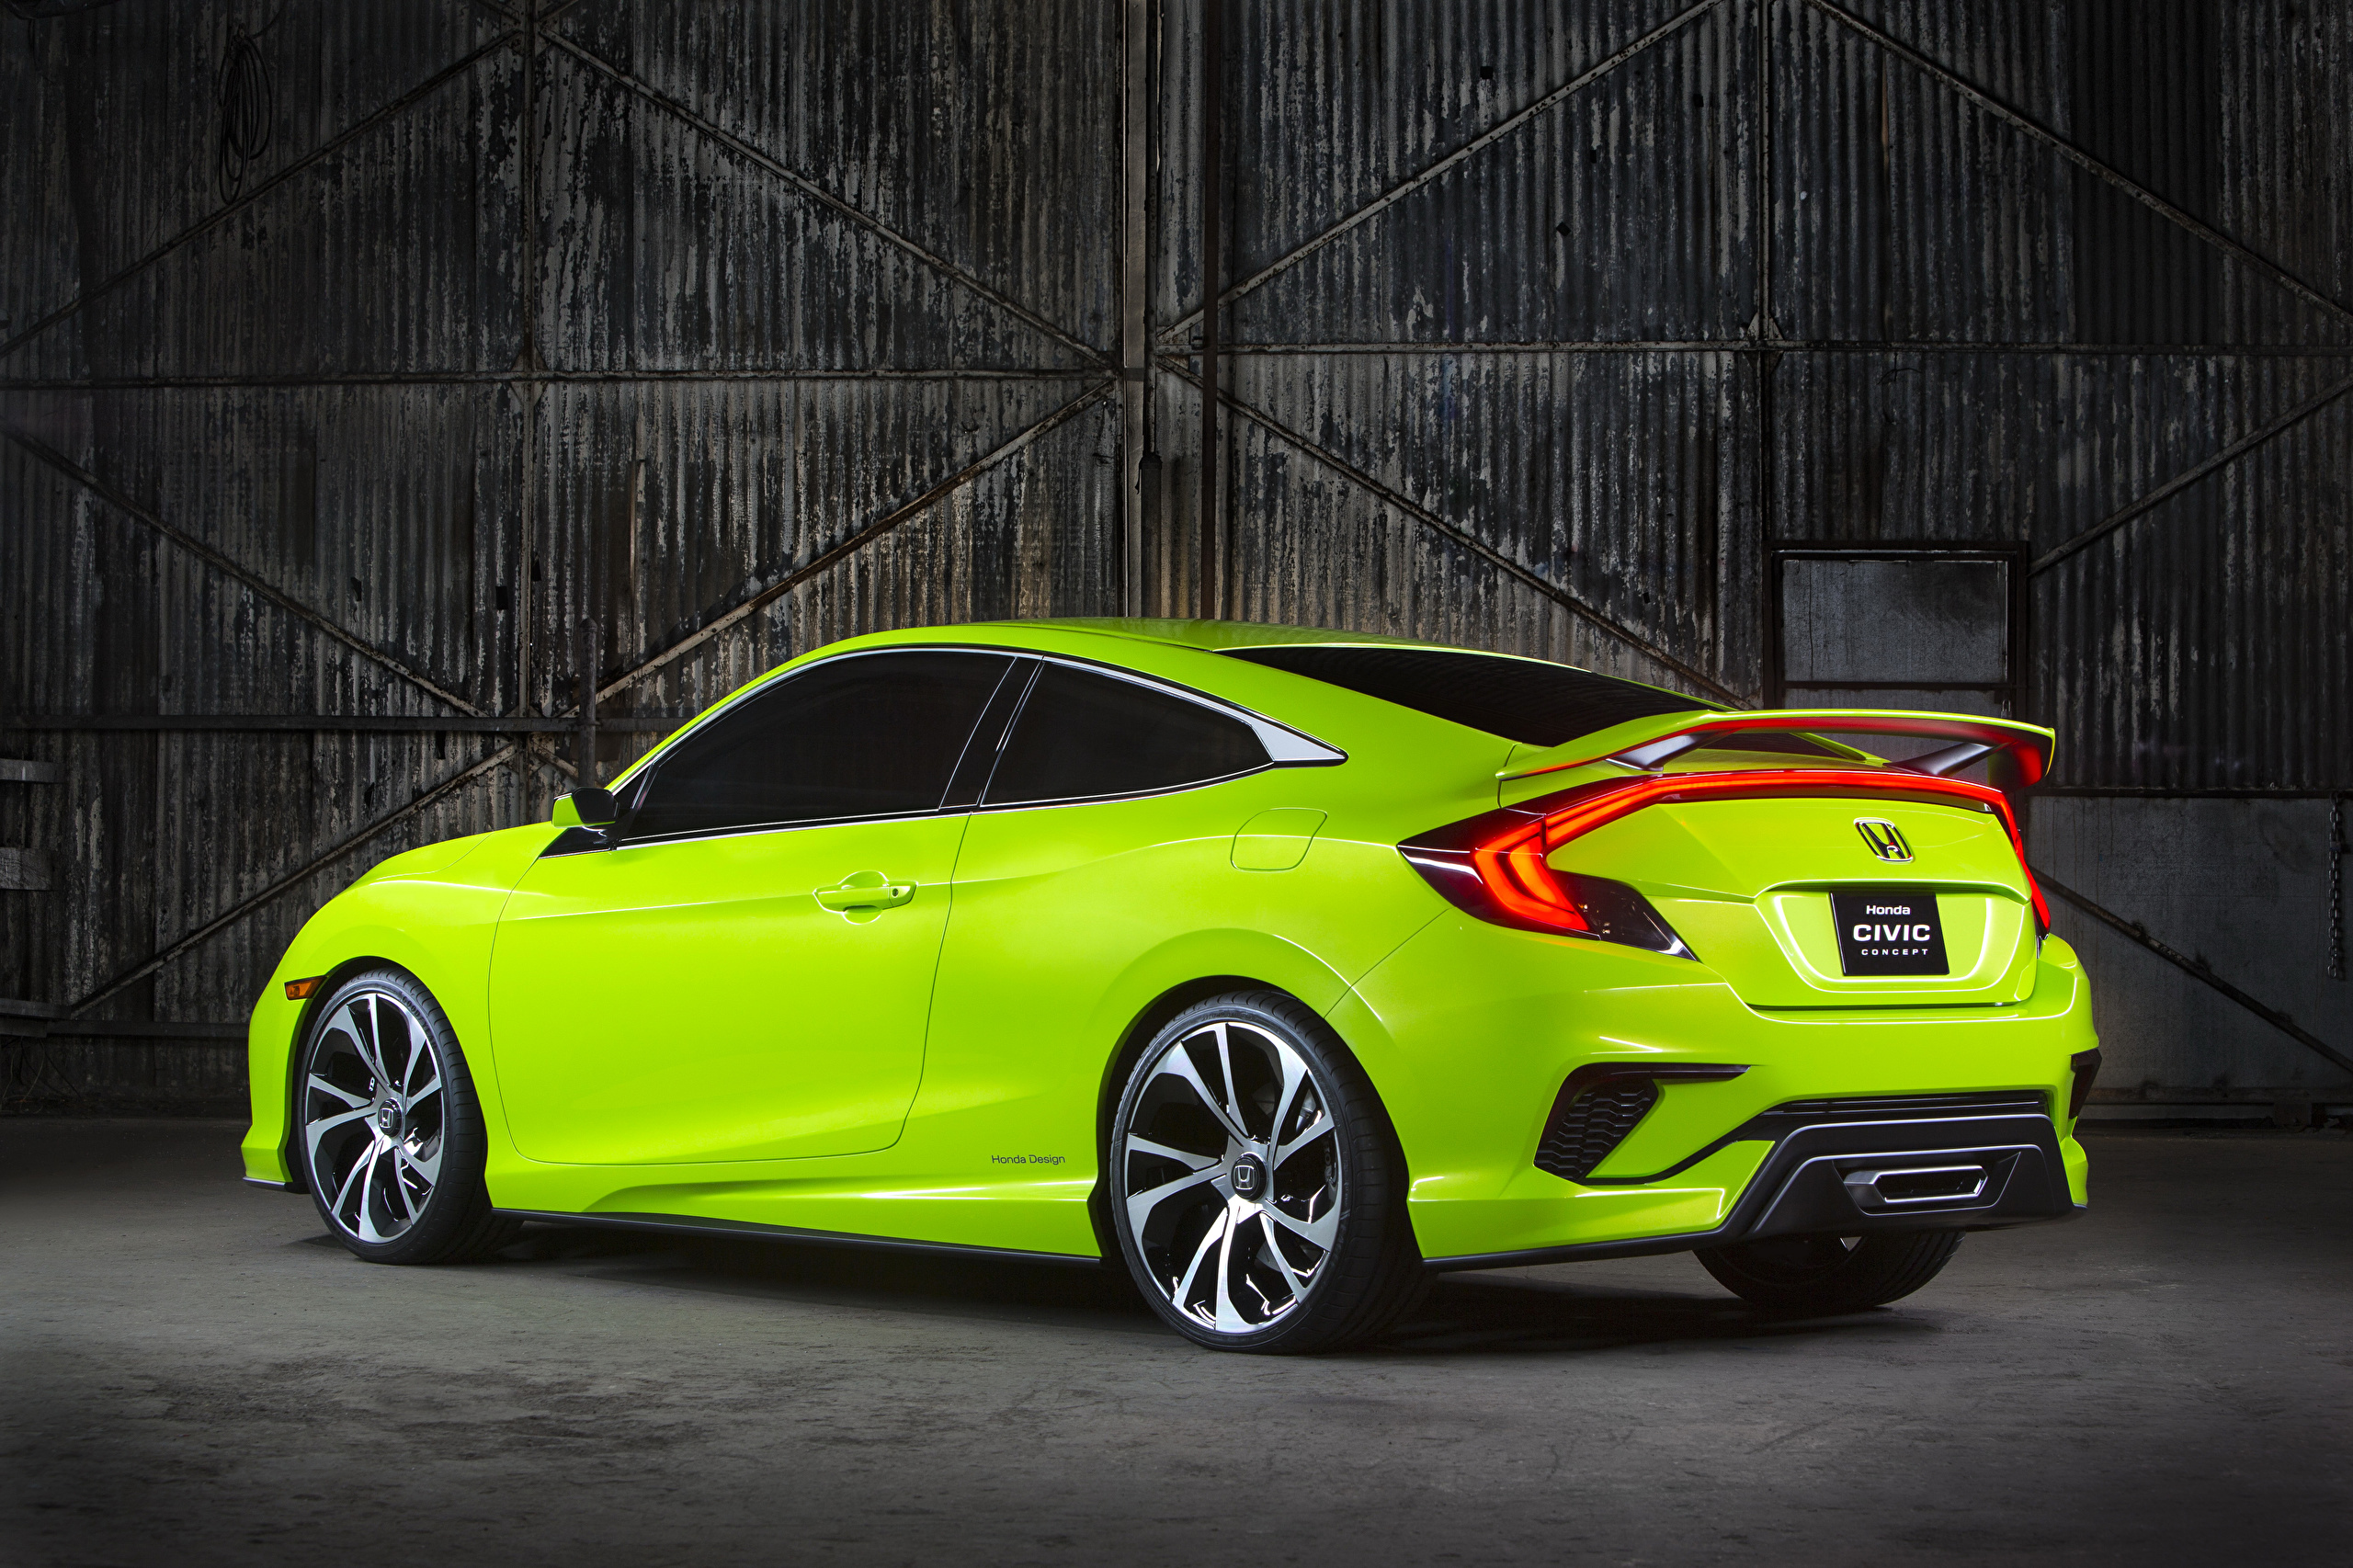 2015 Honda Civic Accessories amp Parts at CARiDcom